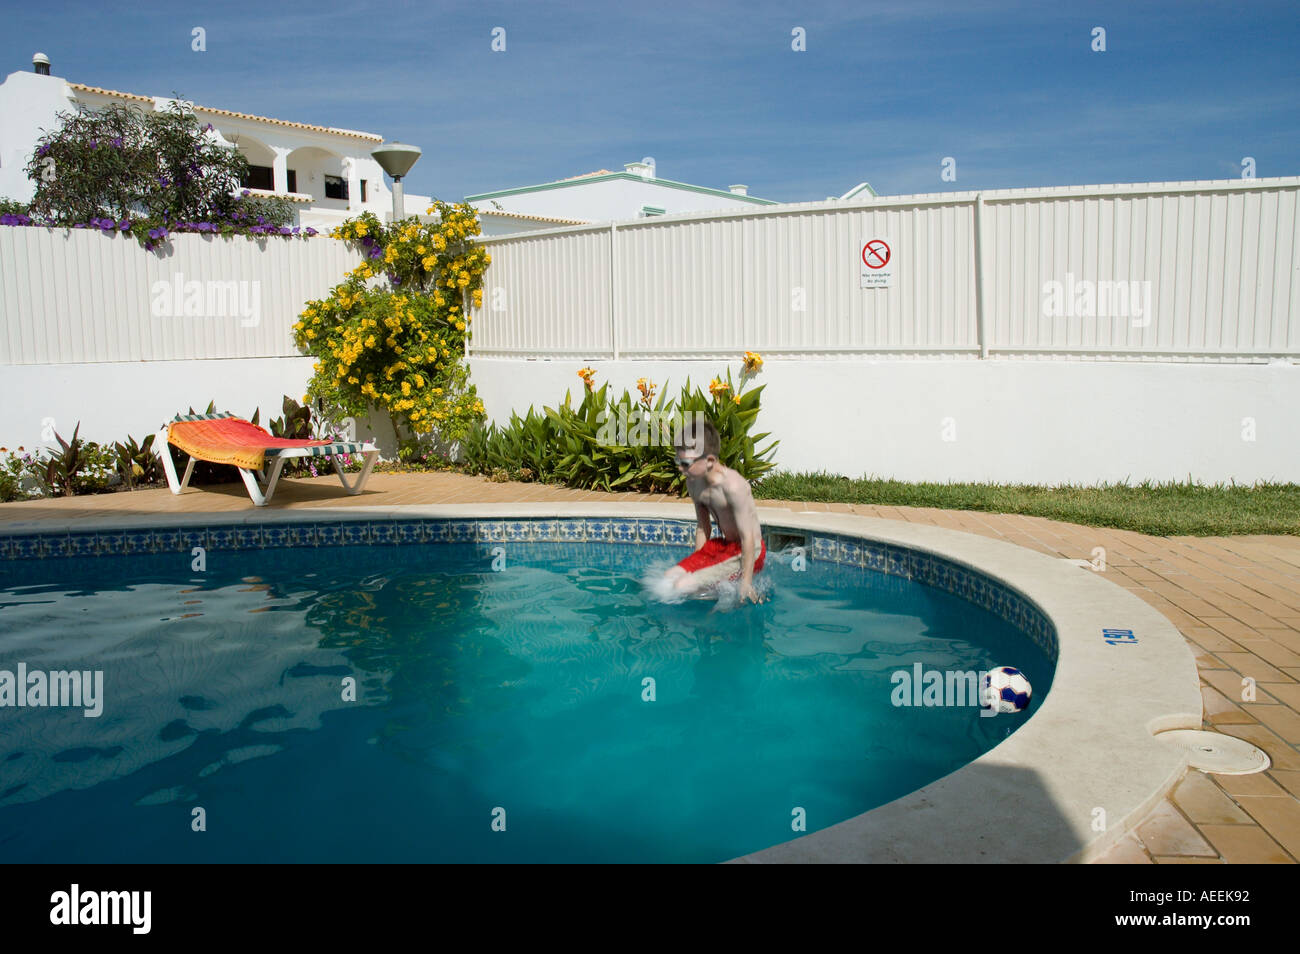 9 year old boy jumping into a swimming pool on holiday Stock Photo